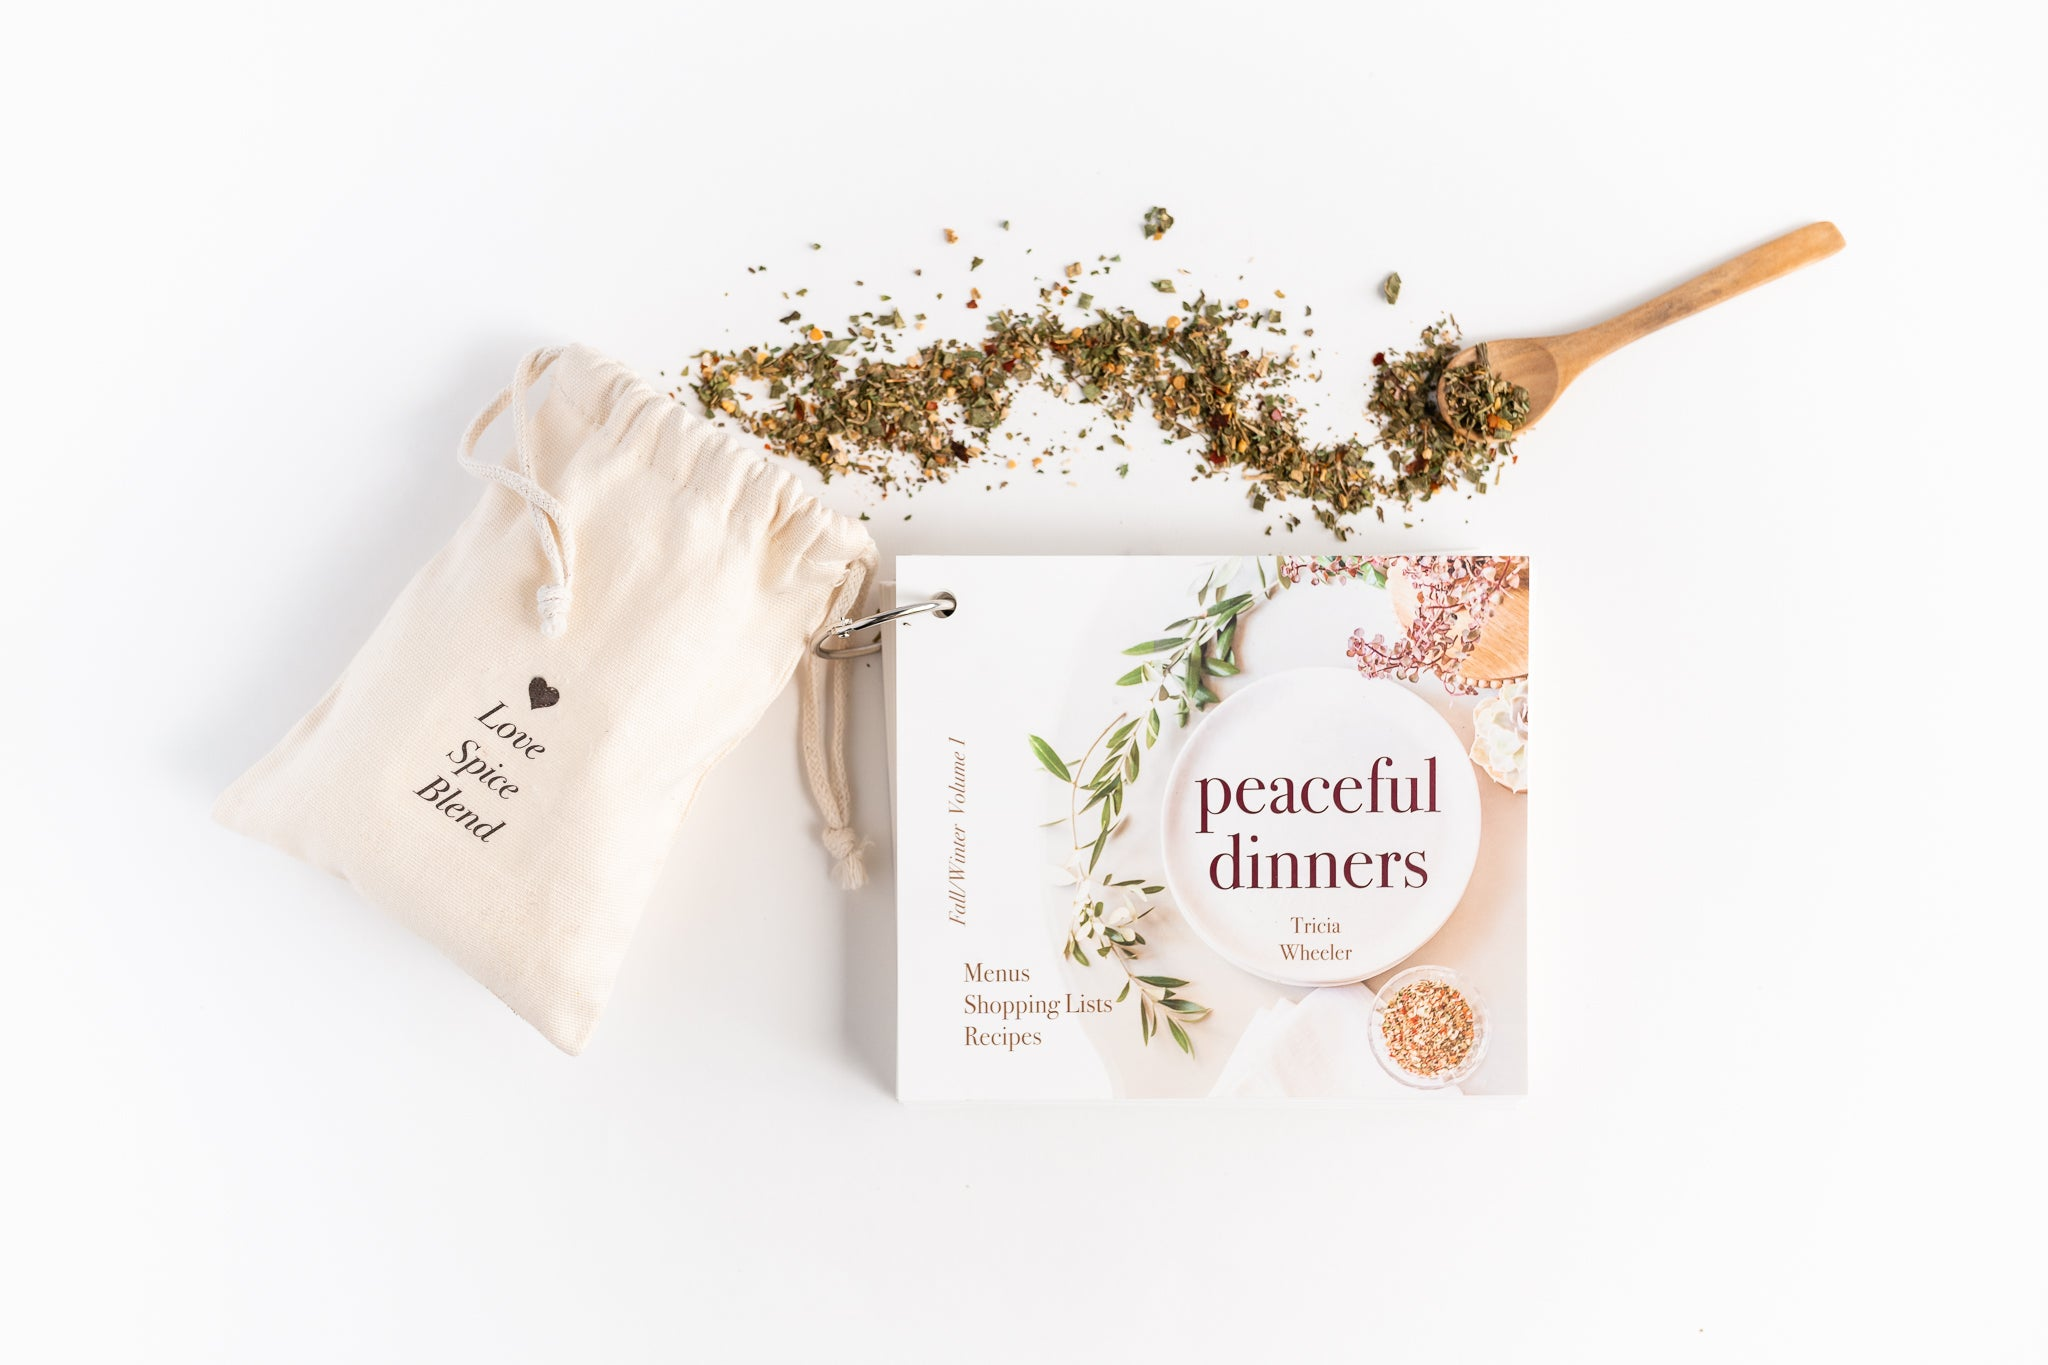 The Peaceful Dinners System - A Collection of Menus, Shopping Lists, and Recipes + our Special Love Spice Blend